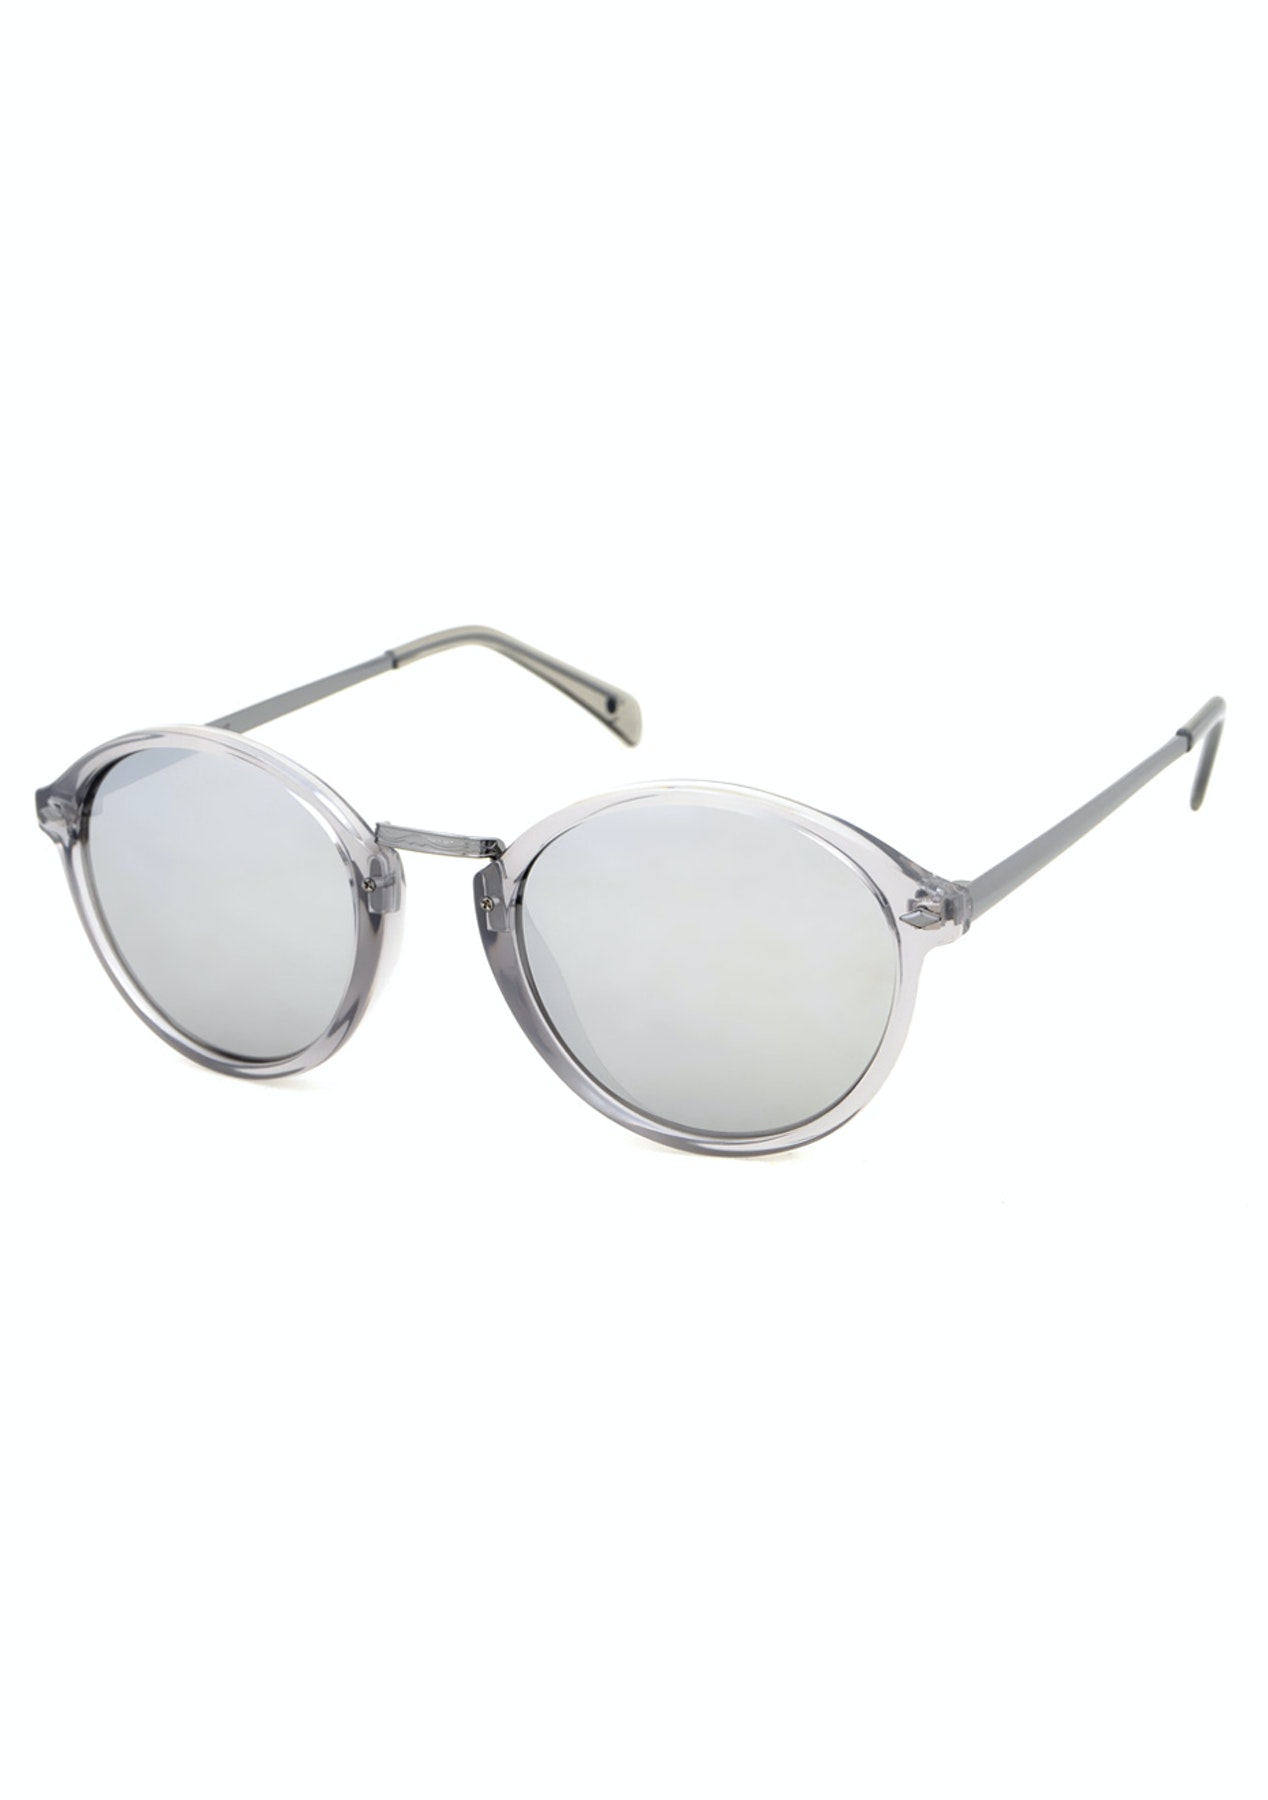 78b013d42c ROC - Scout - Crystal Grey - Sunglasses Steals from  9.95 - Onceit